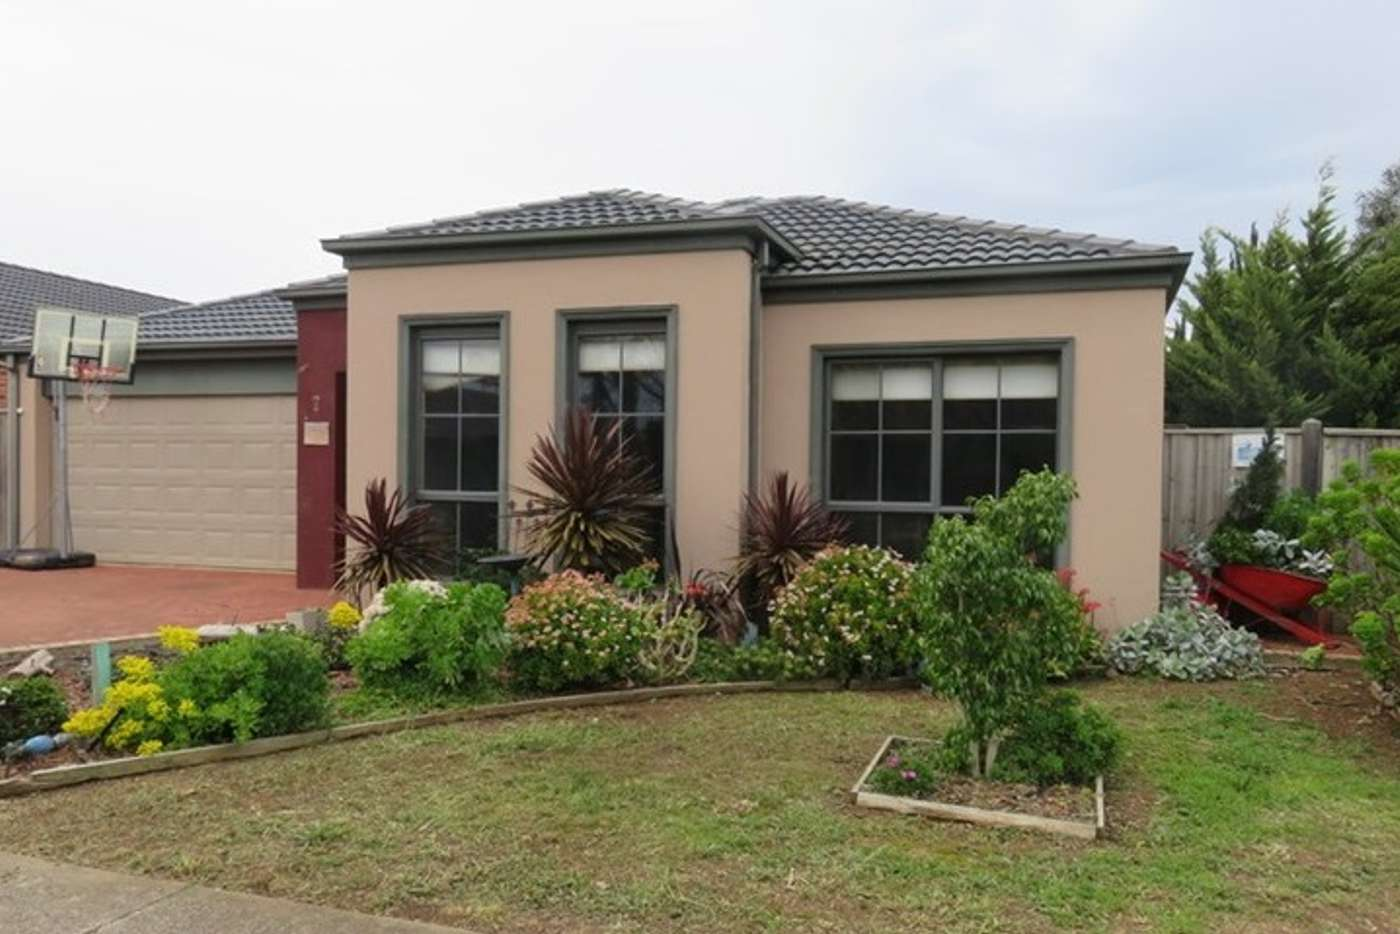 Main view of Homely house listing, 7 Zetland Way, Tarneit VIC 3029